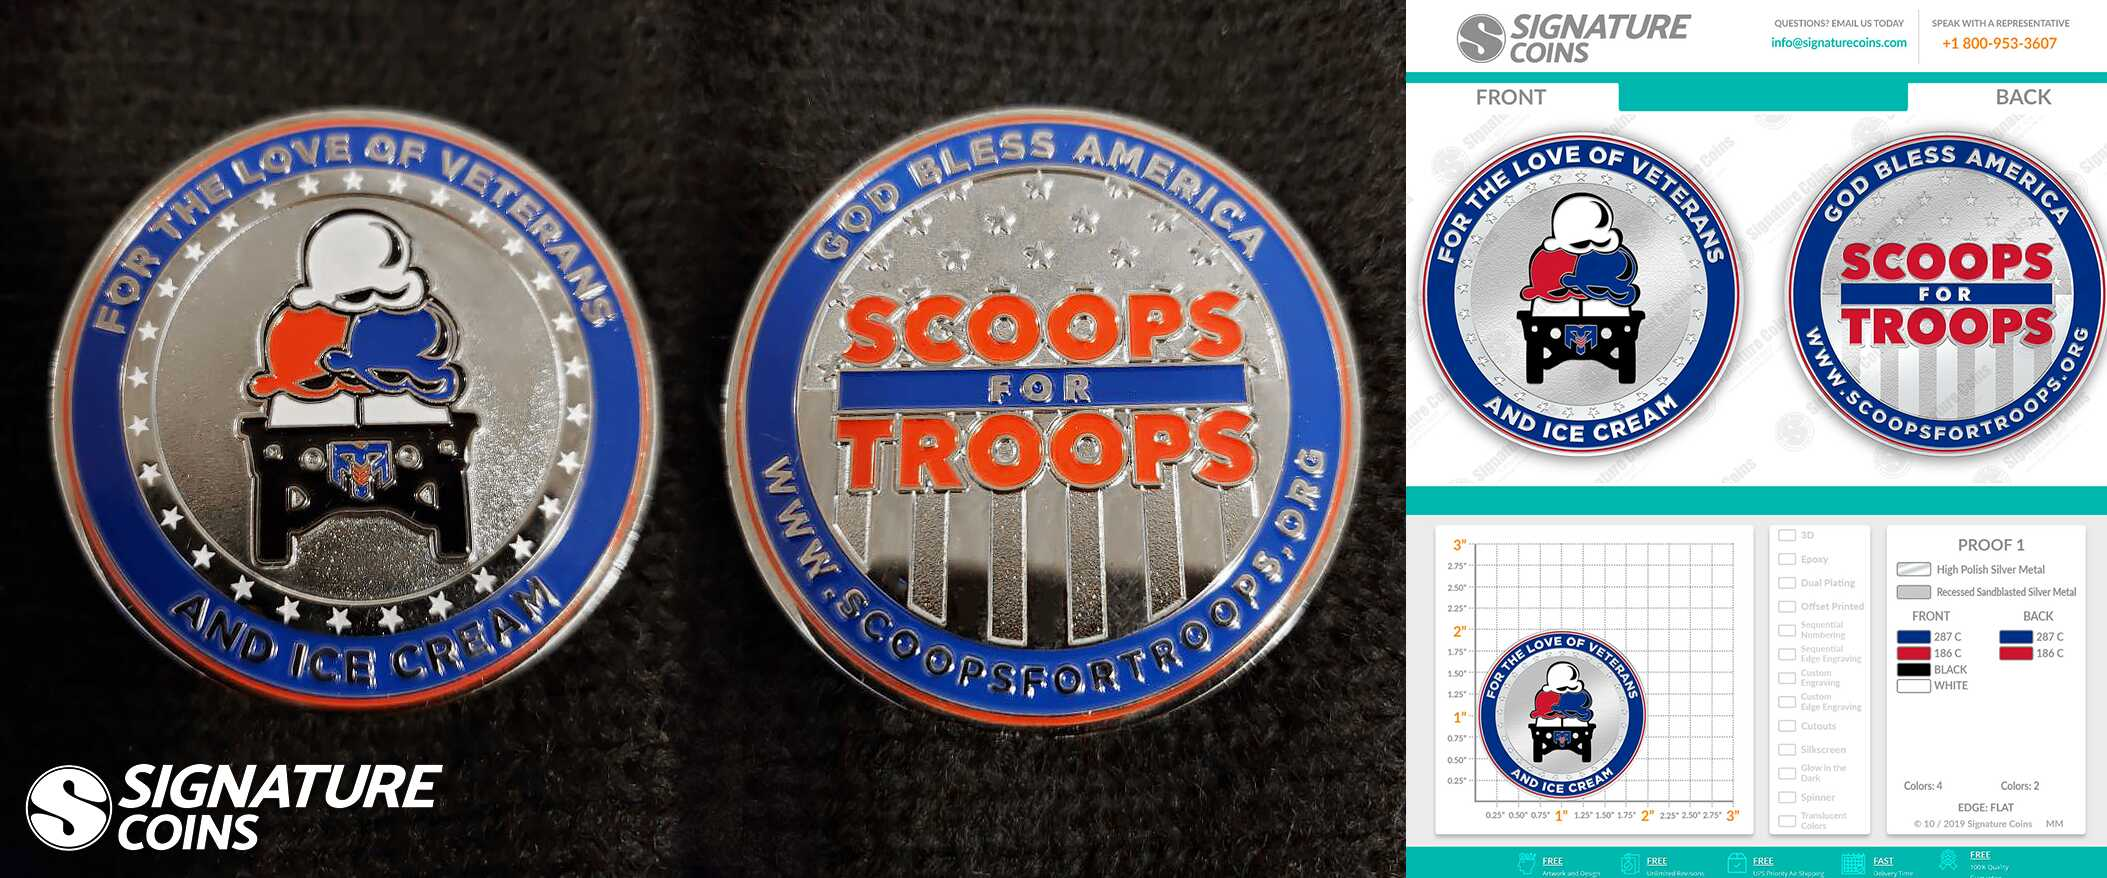 Signature Coins Scoops for Troops Challenge Coin2